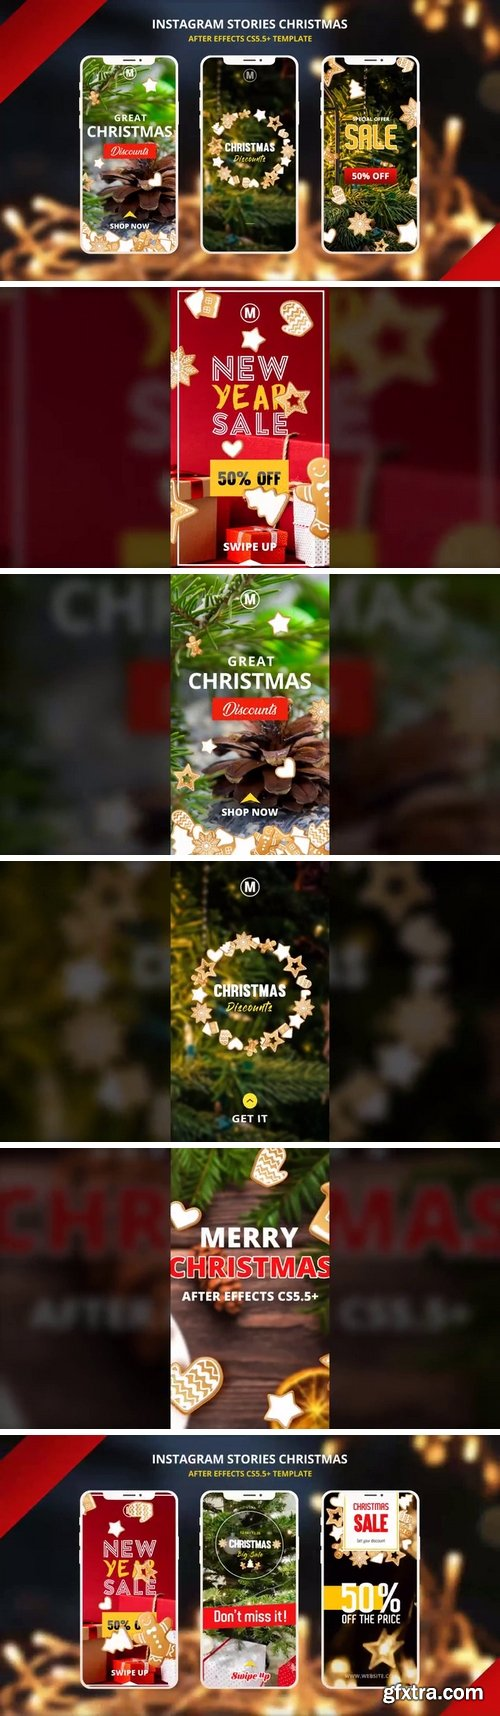 MA -  Instagtam Christmas Stories After Effects Templates 150318